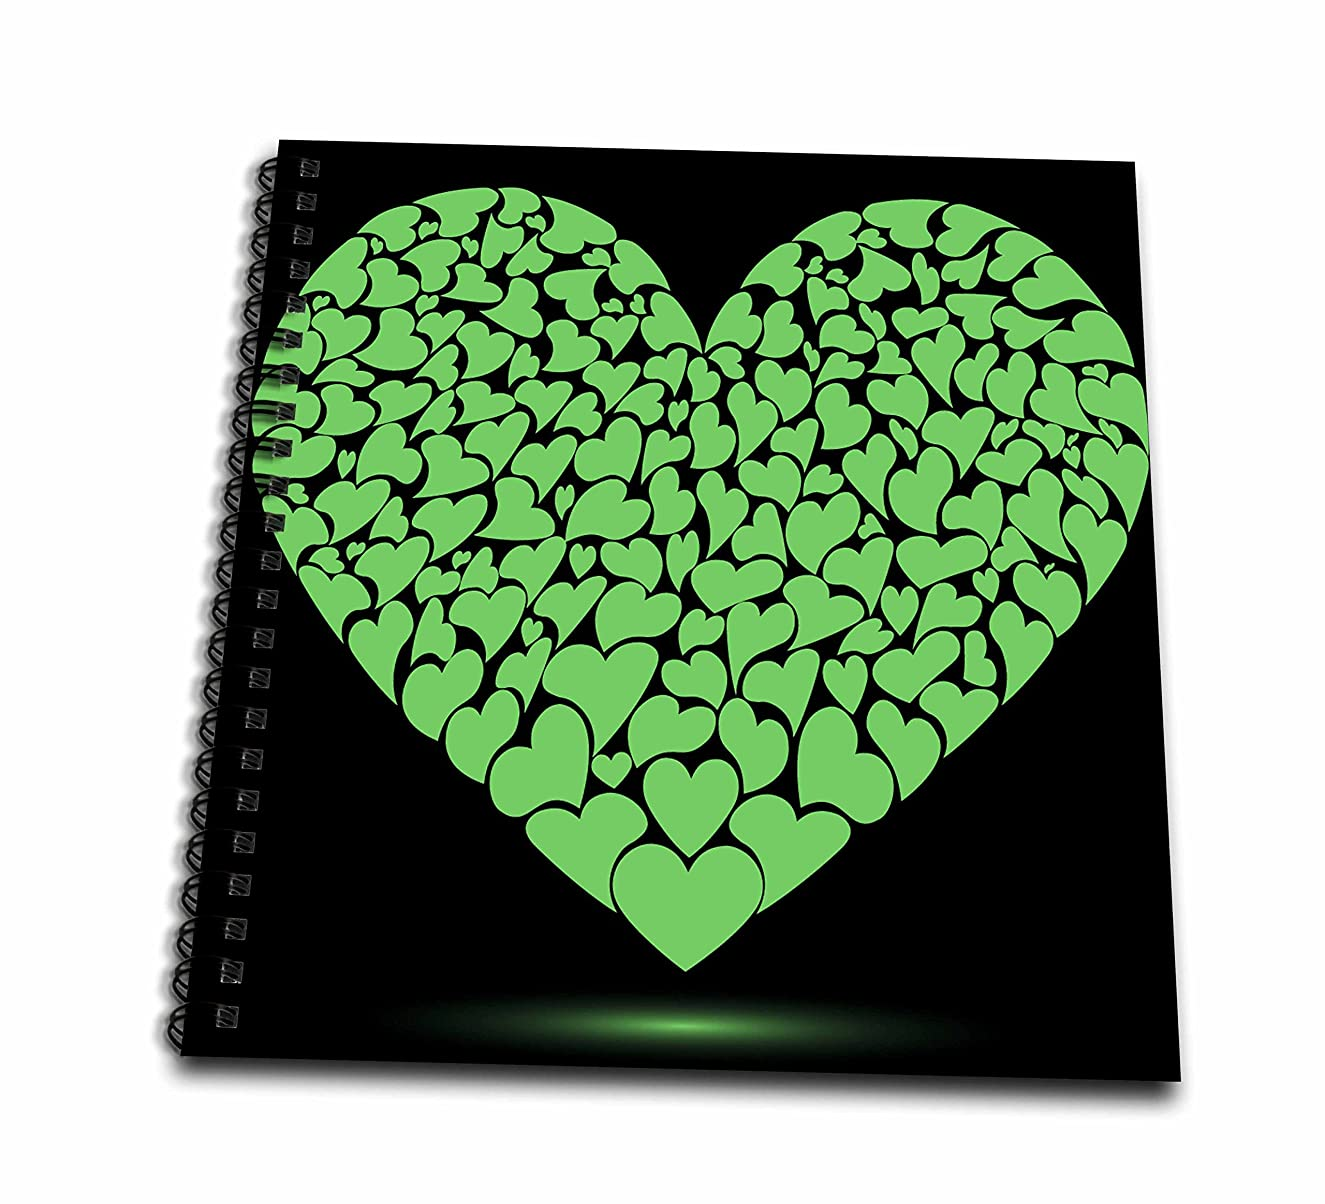 3dRose db_101578_1 Large Green Heart Made of Smaller Hearts-Drawing Book, 8 by 8-Inch